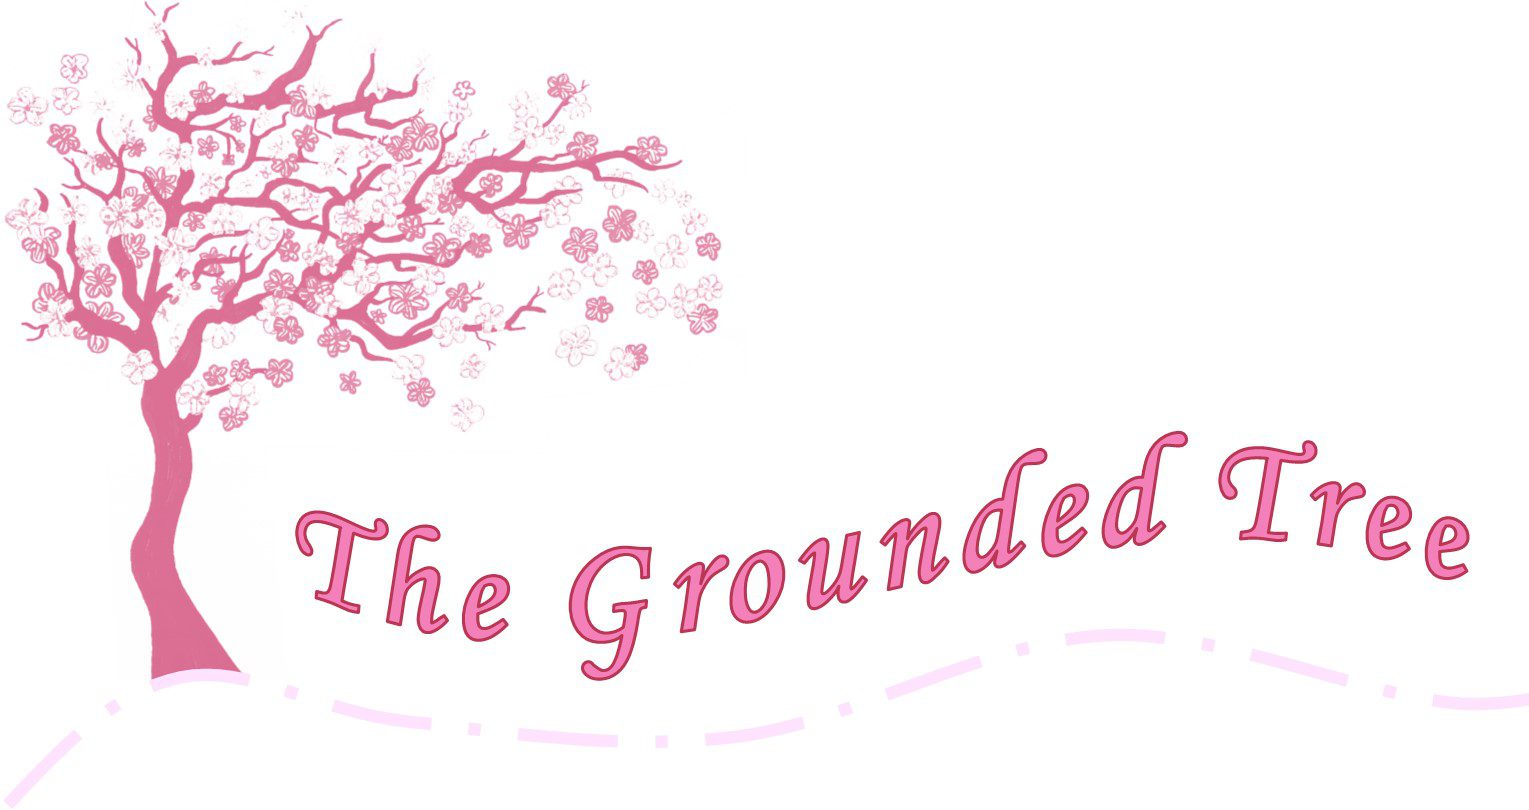 The Grounded Tree